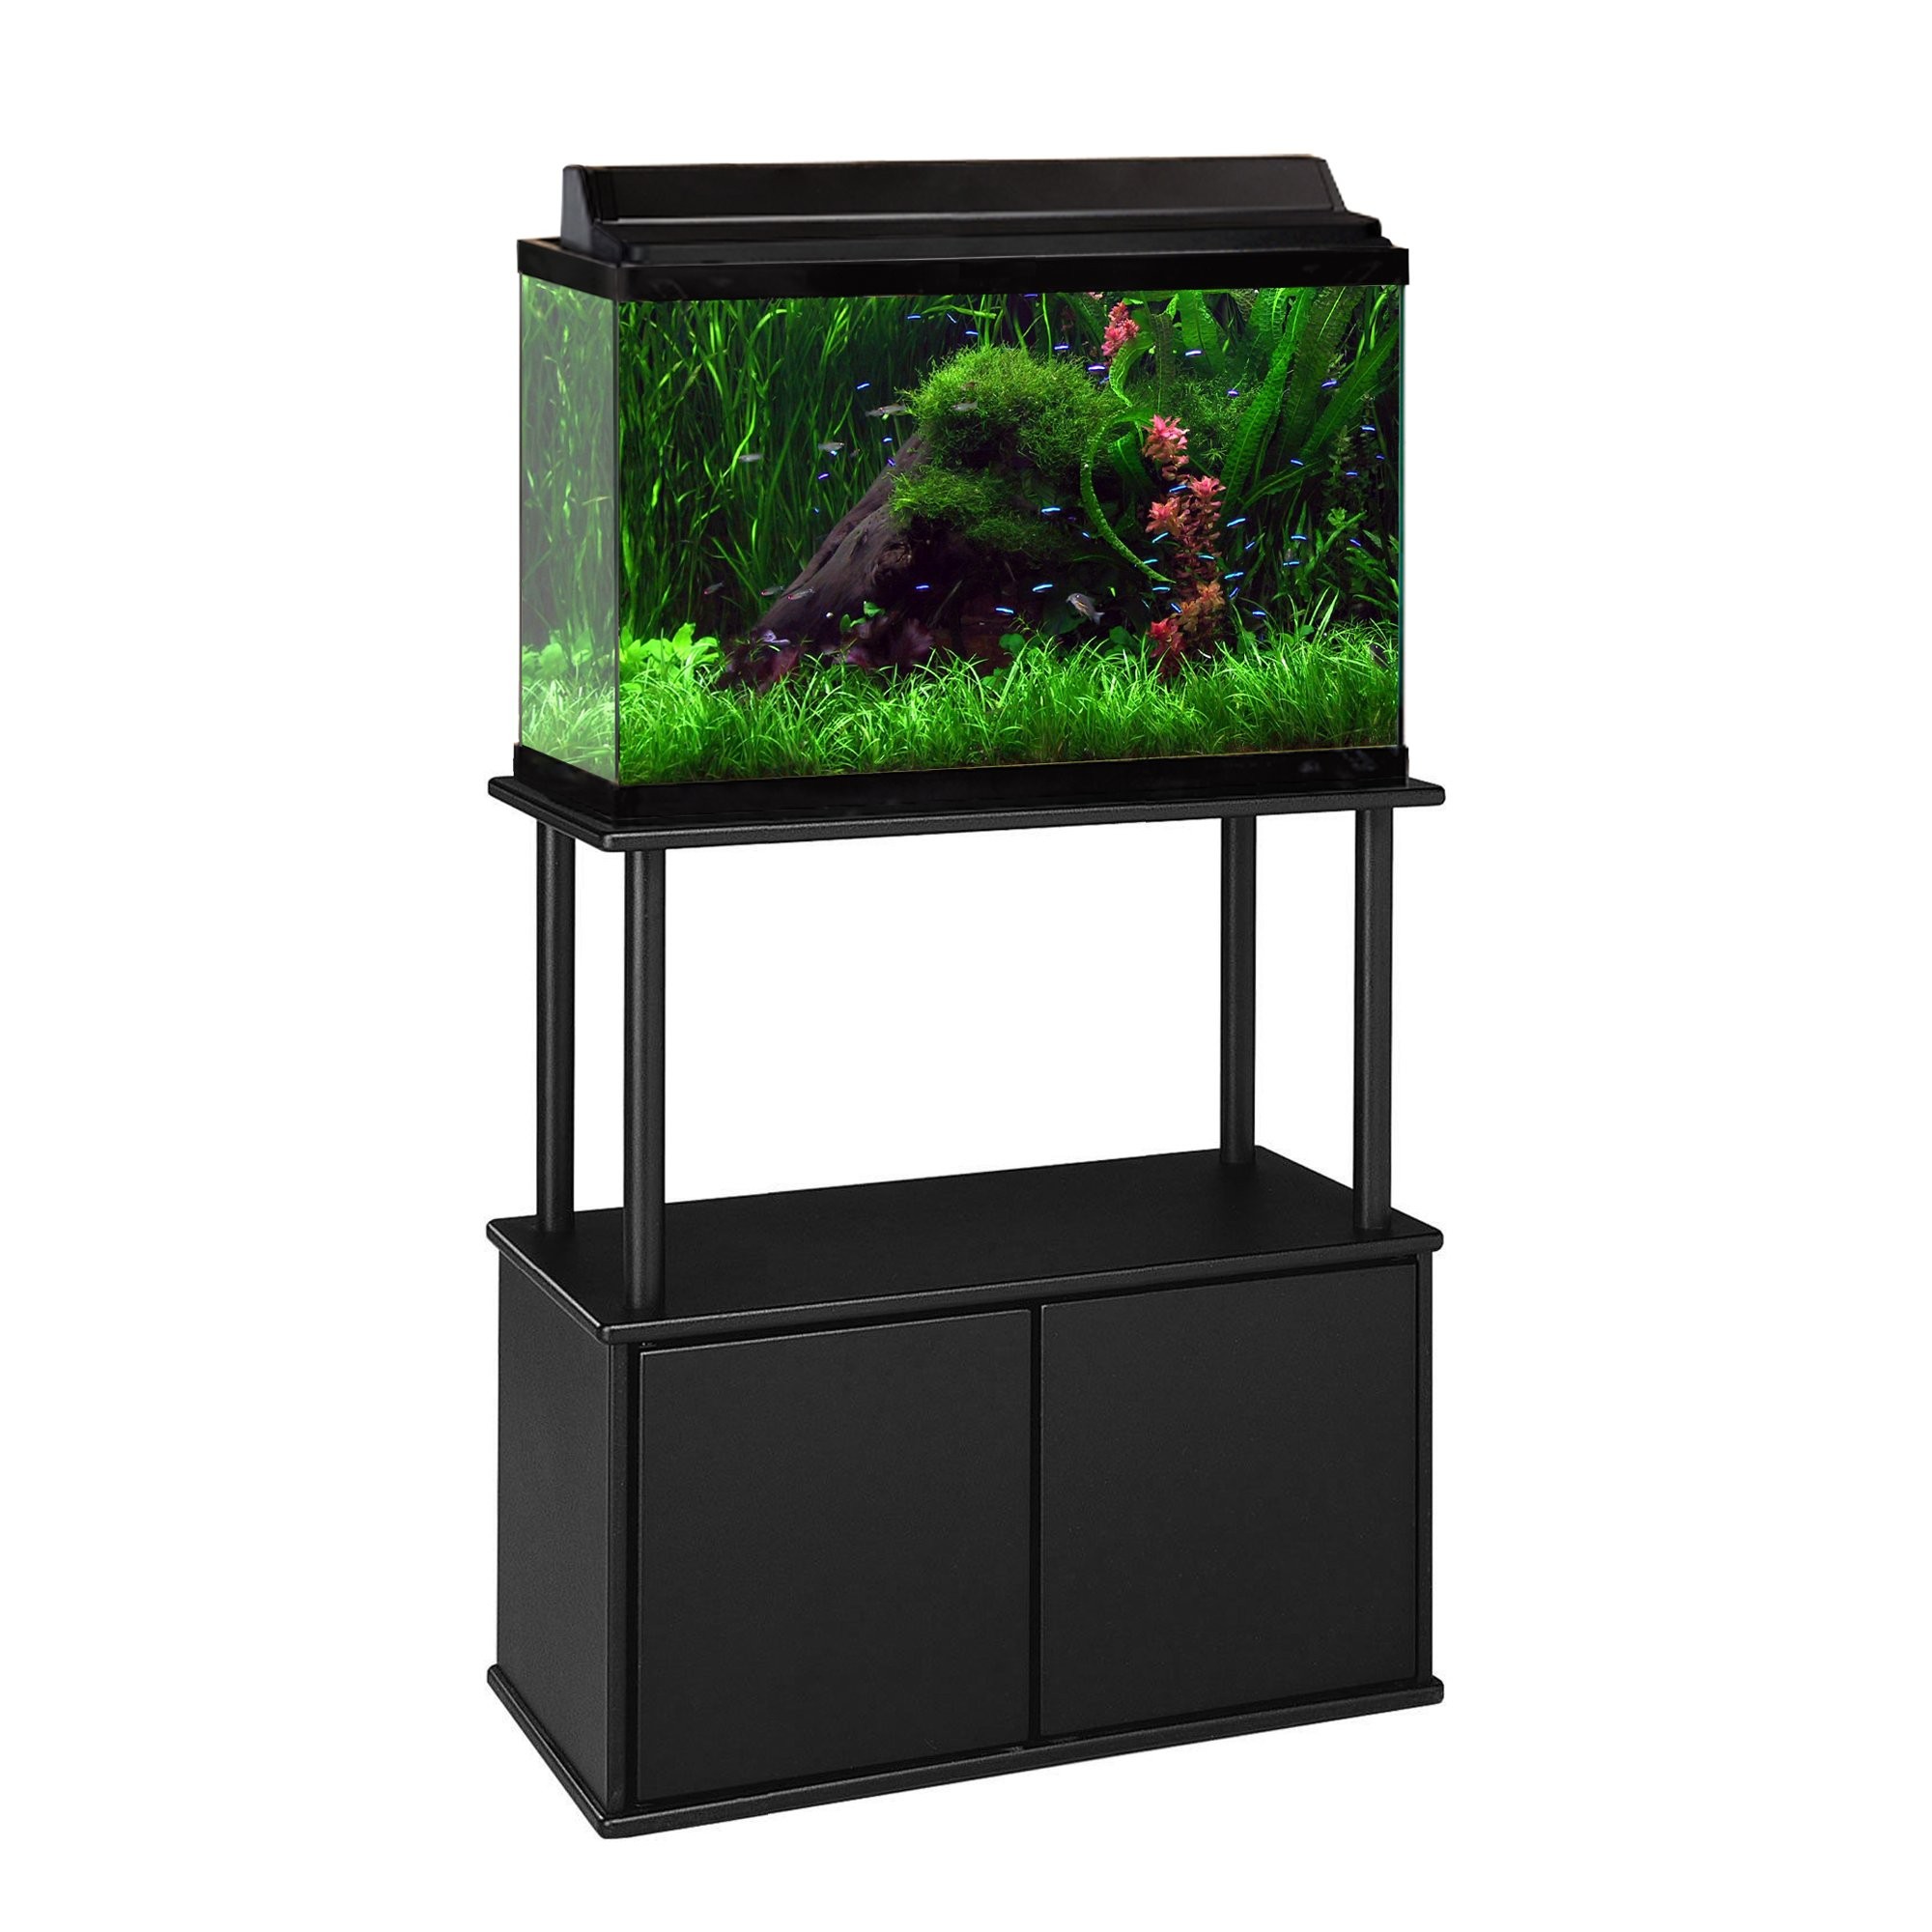 Aquatic fundamentals 10 20 gallon aquarium stand with for Fish tank table stand